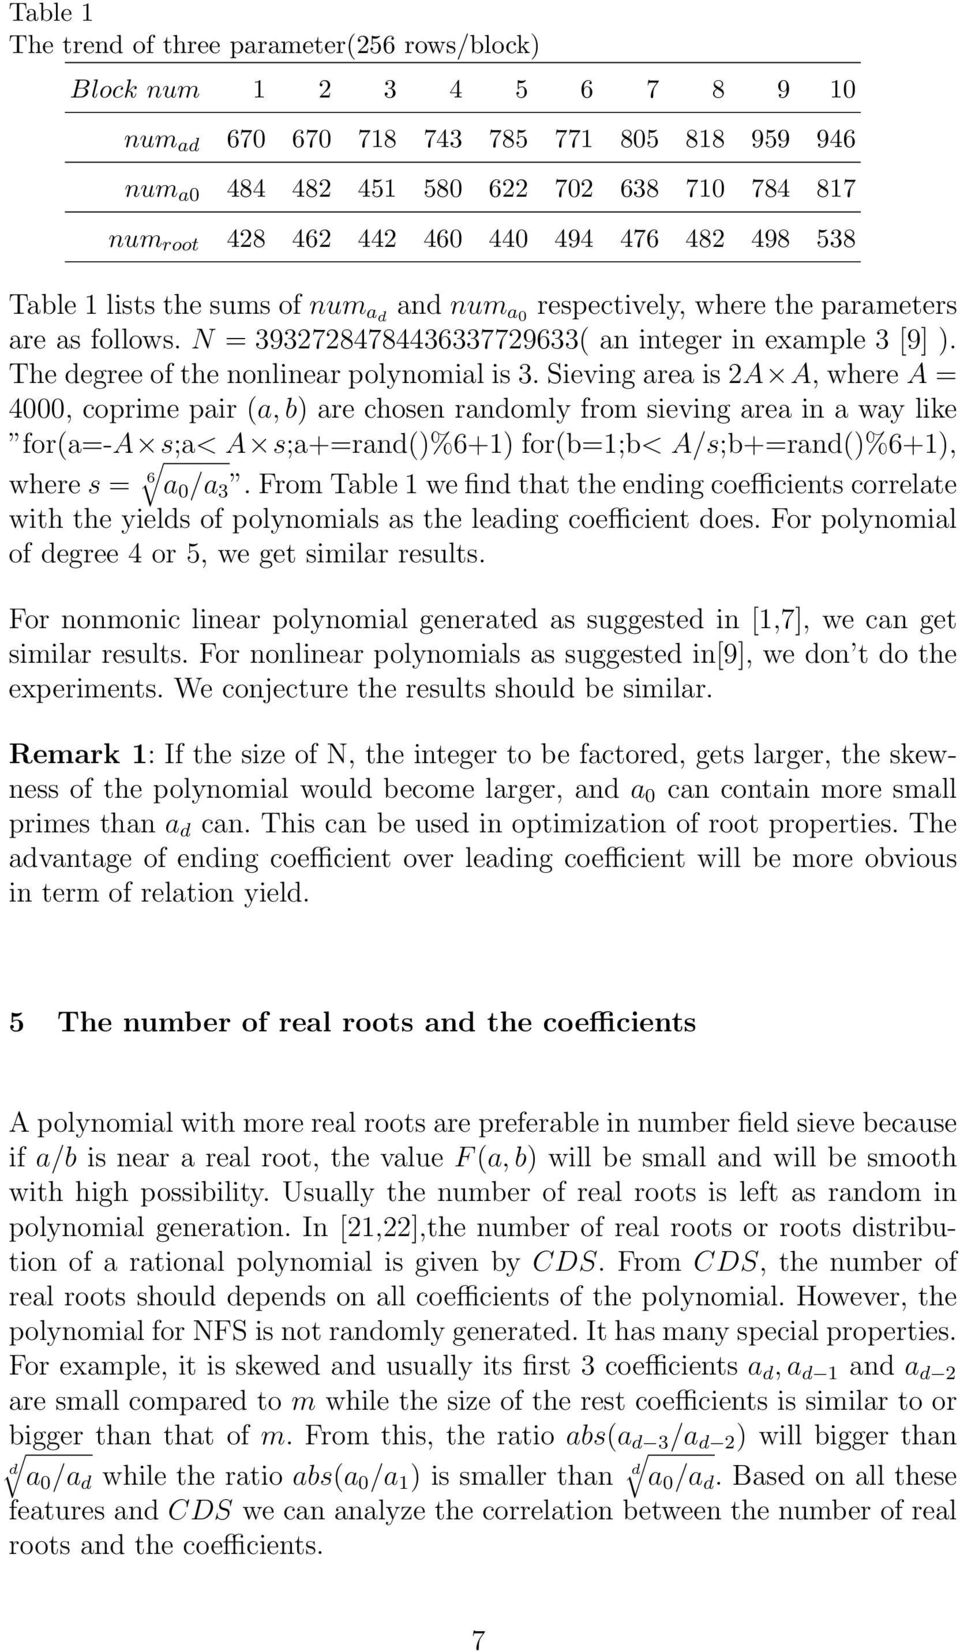 The degree of the nonlinear polynomial is 3.